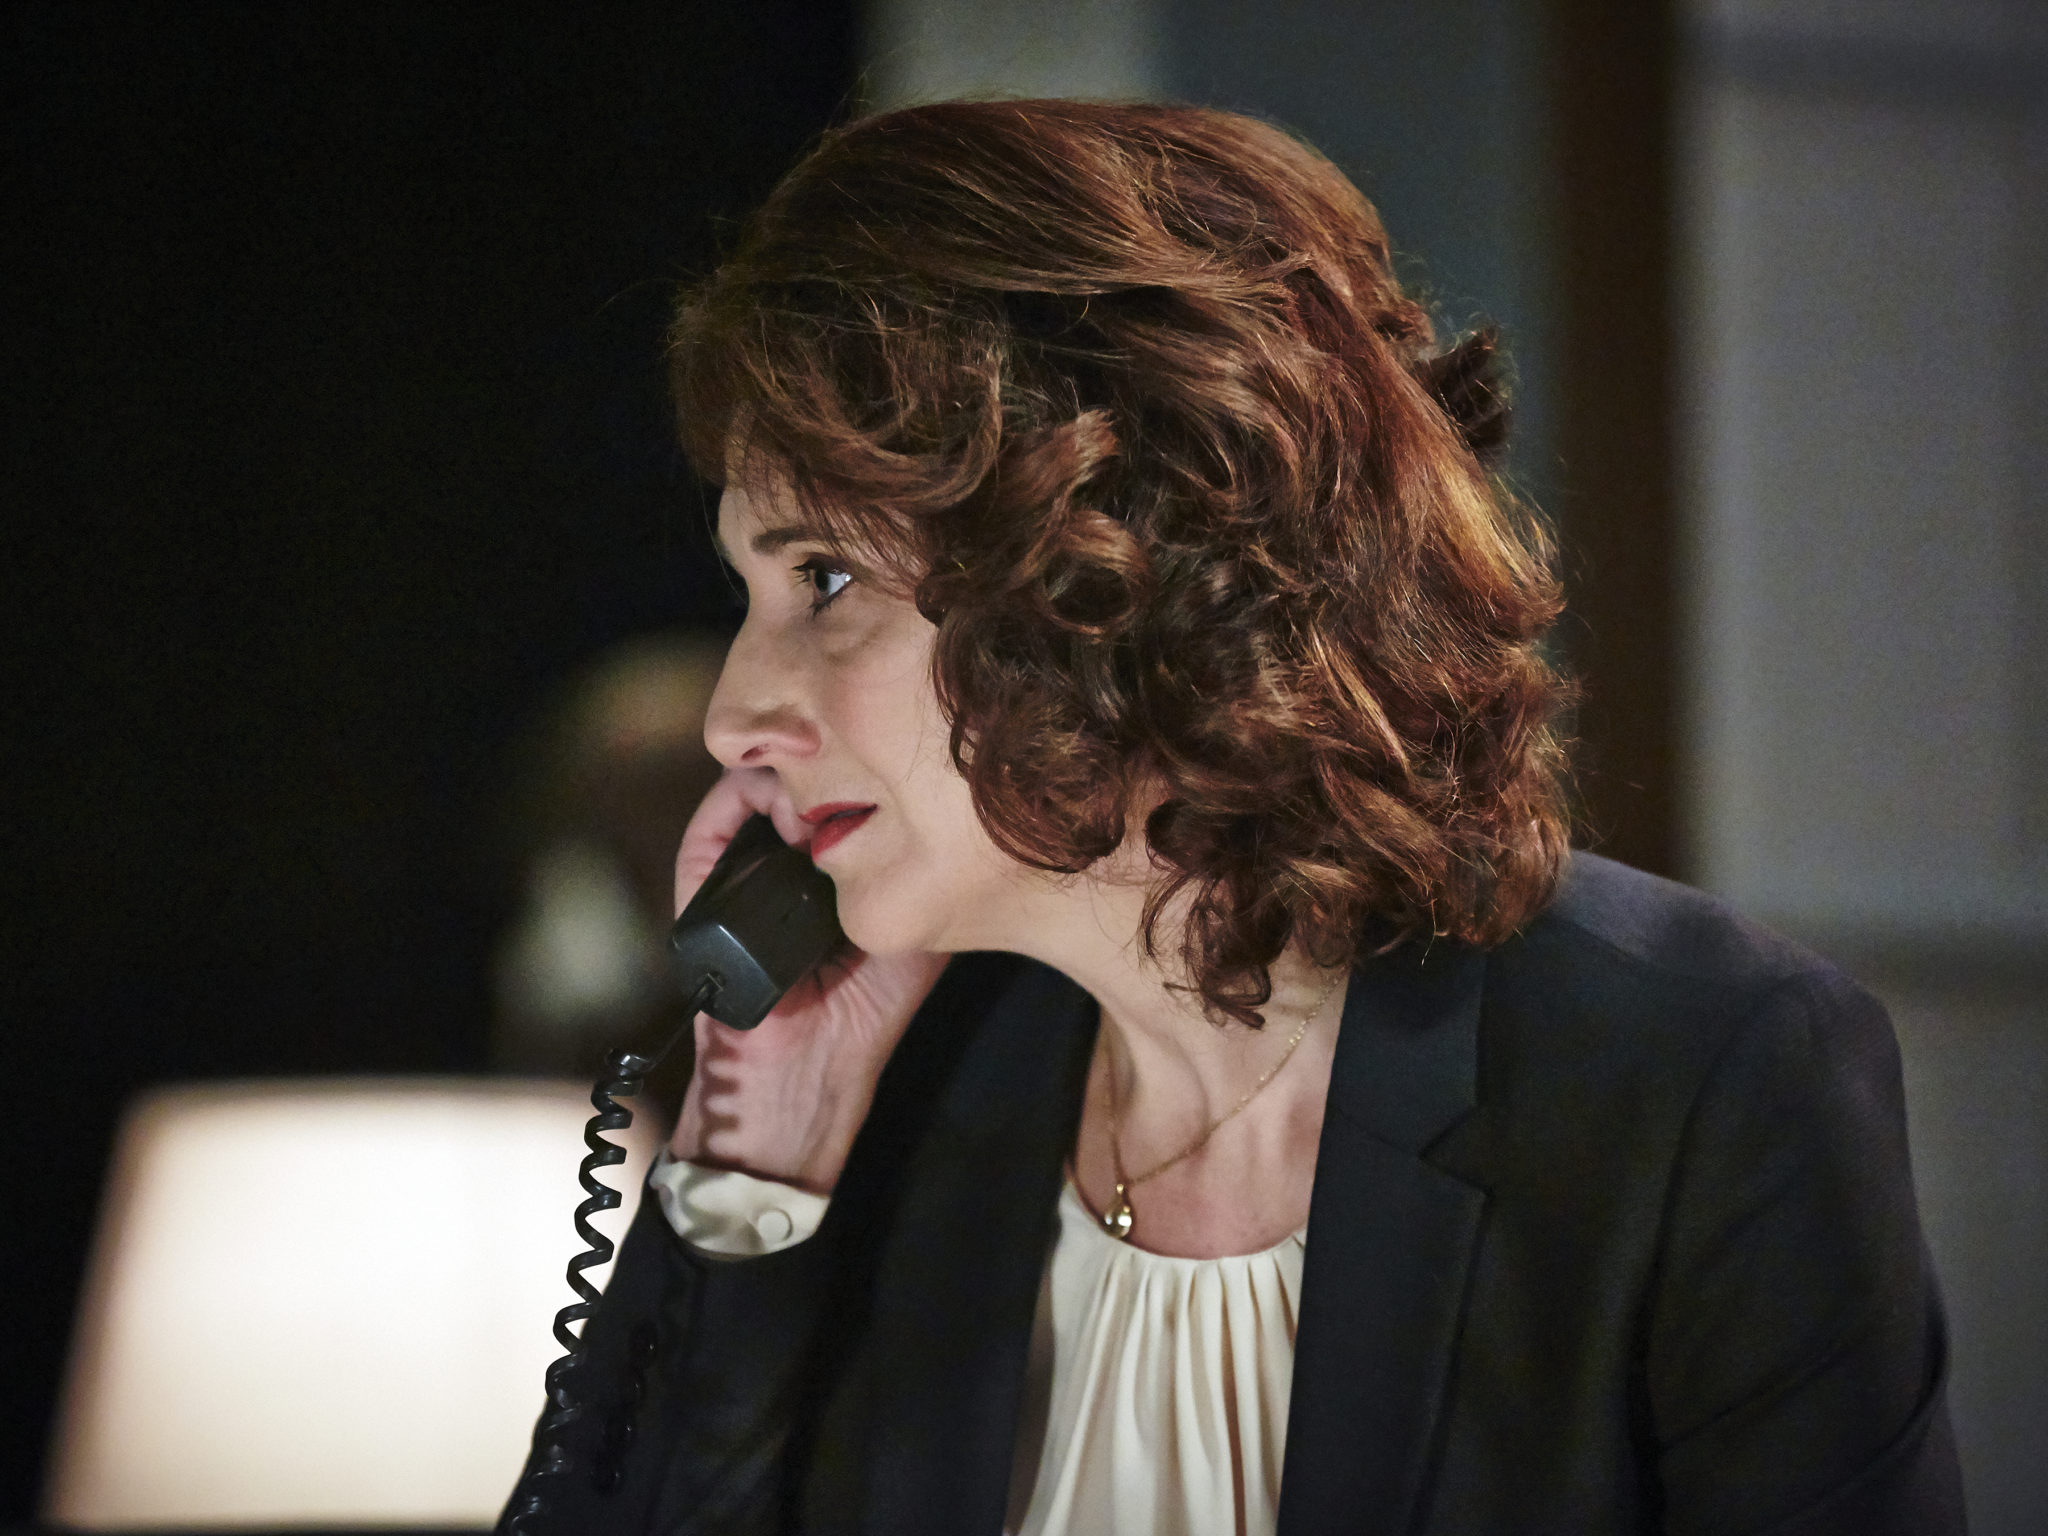 Ali White as The Advisor in The Bailout